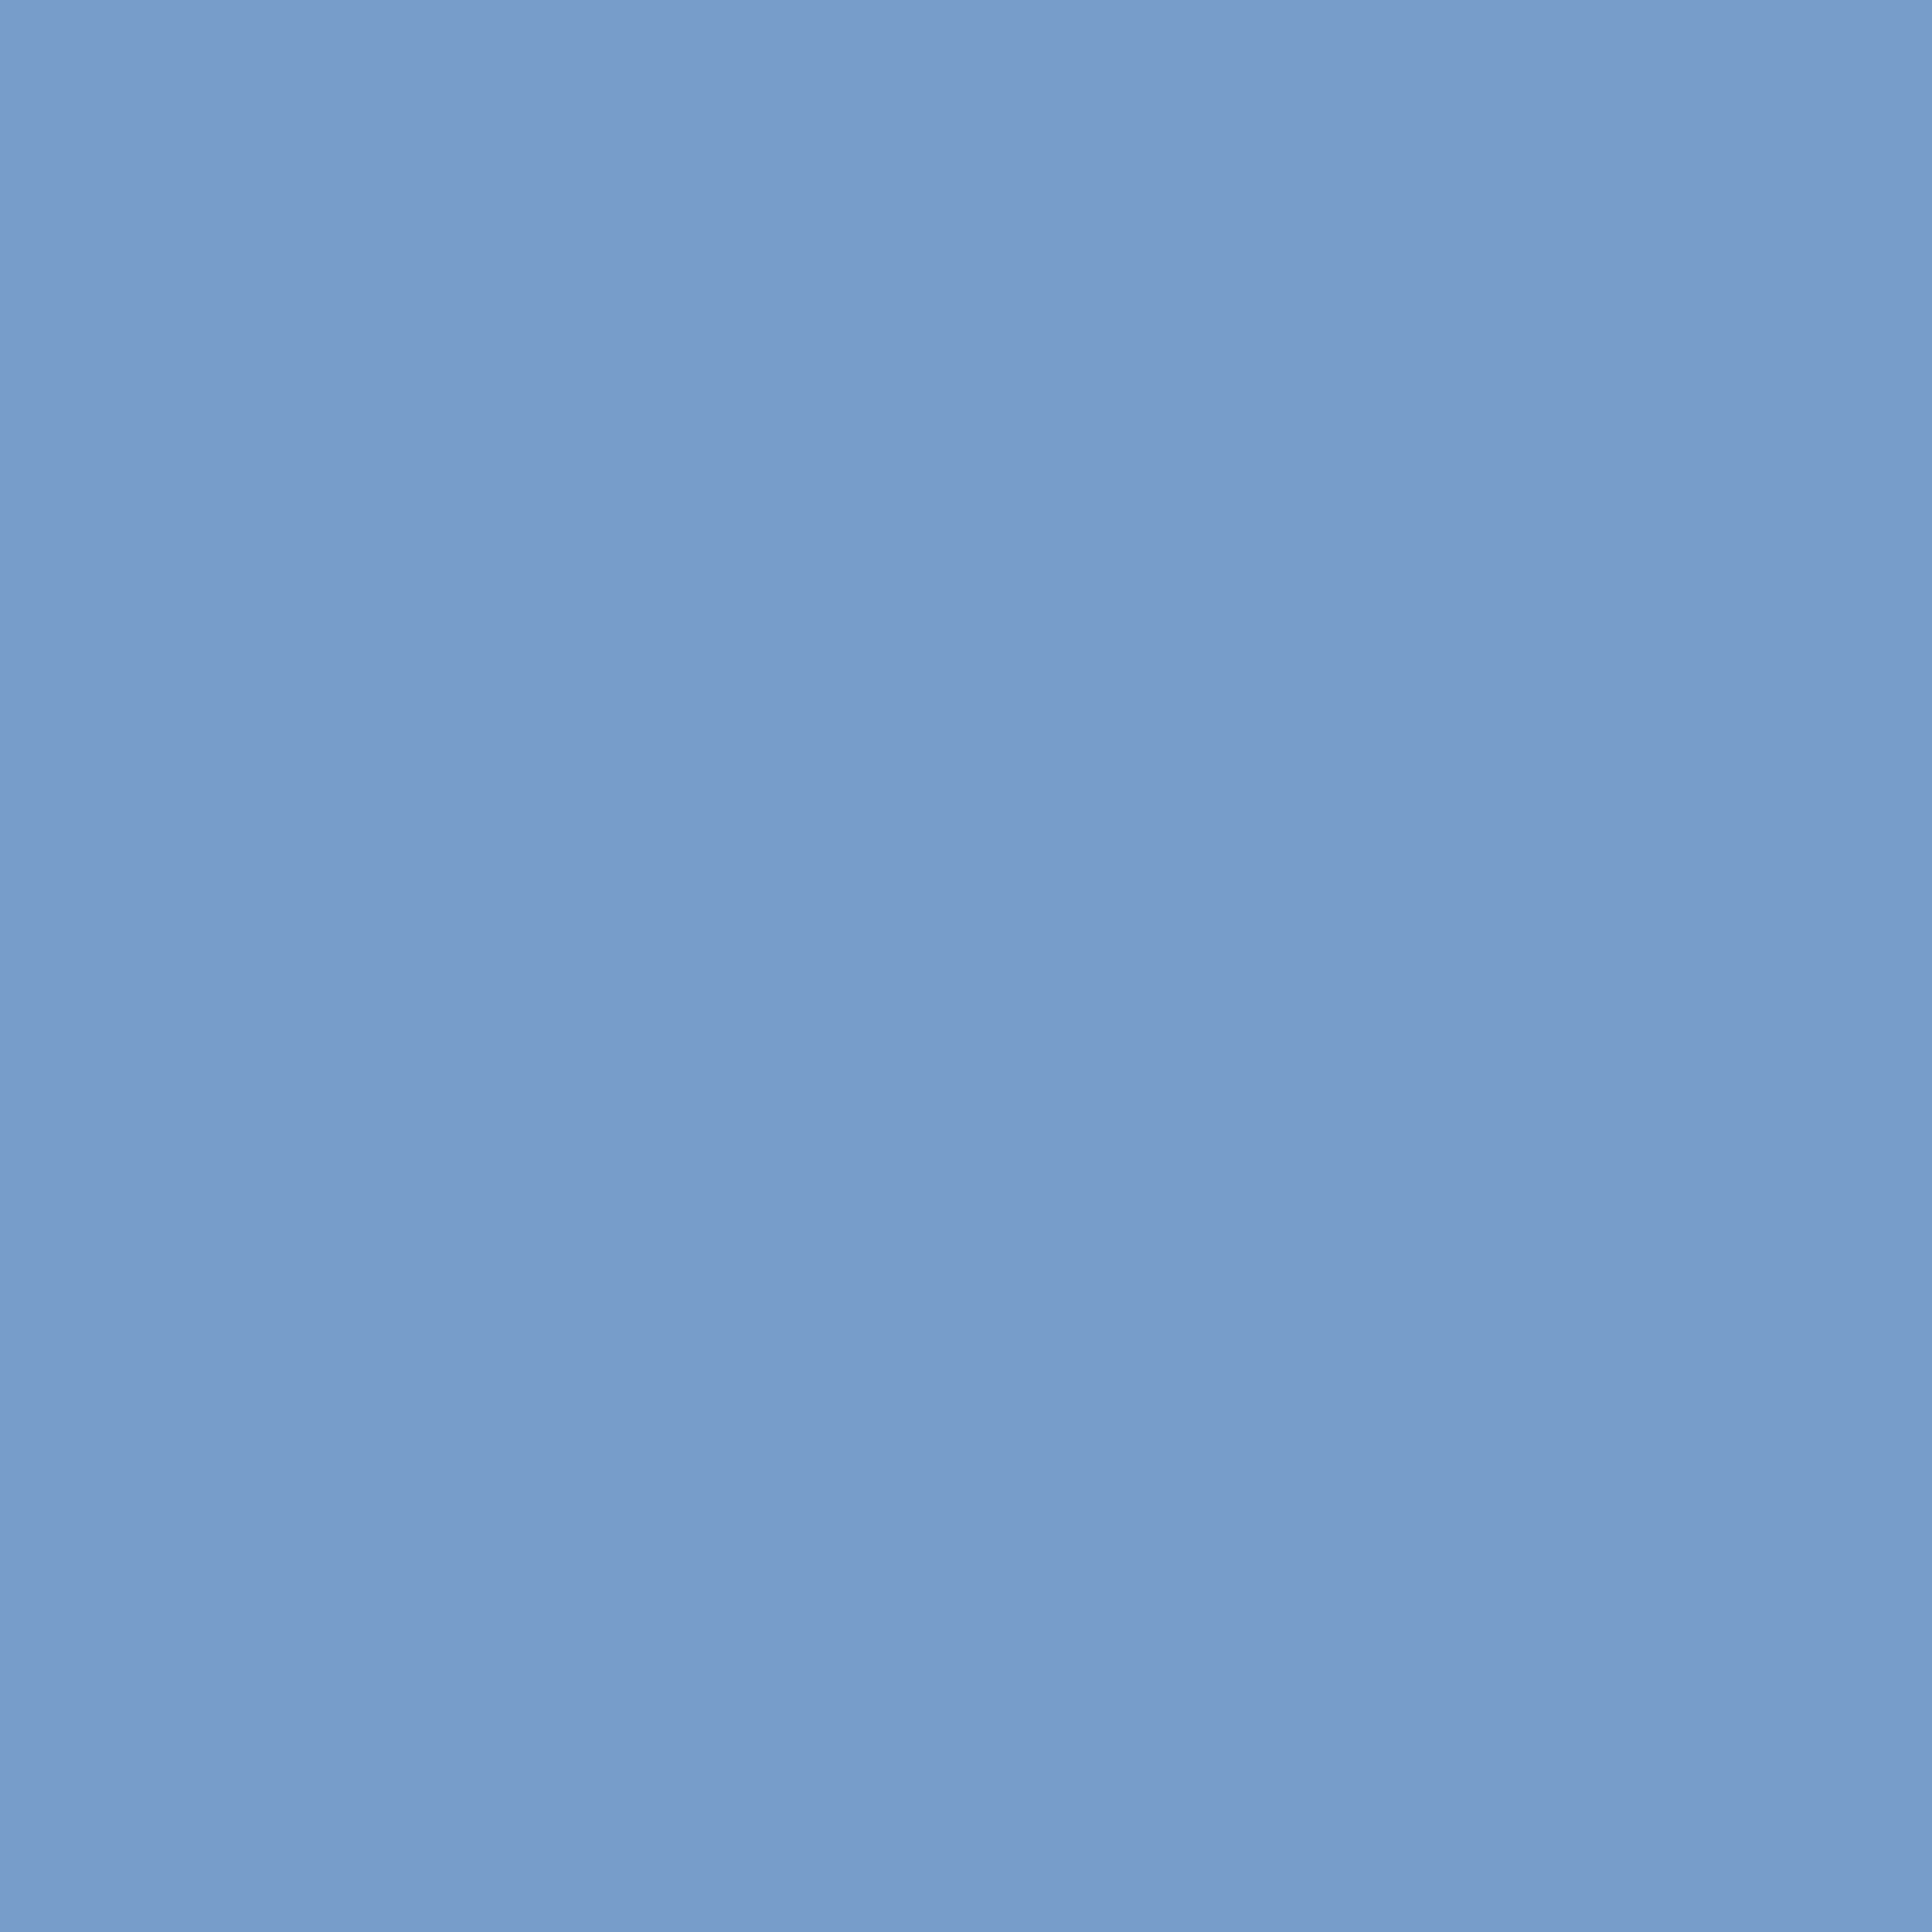 2048x2048 Dark Pastel Blue Solid Color Background